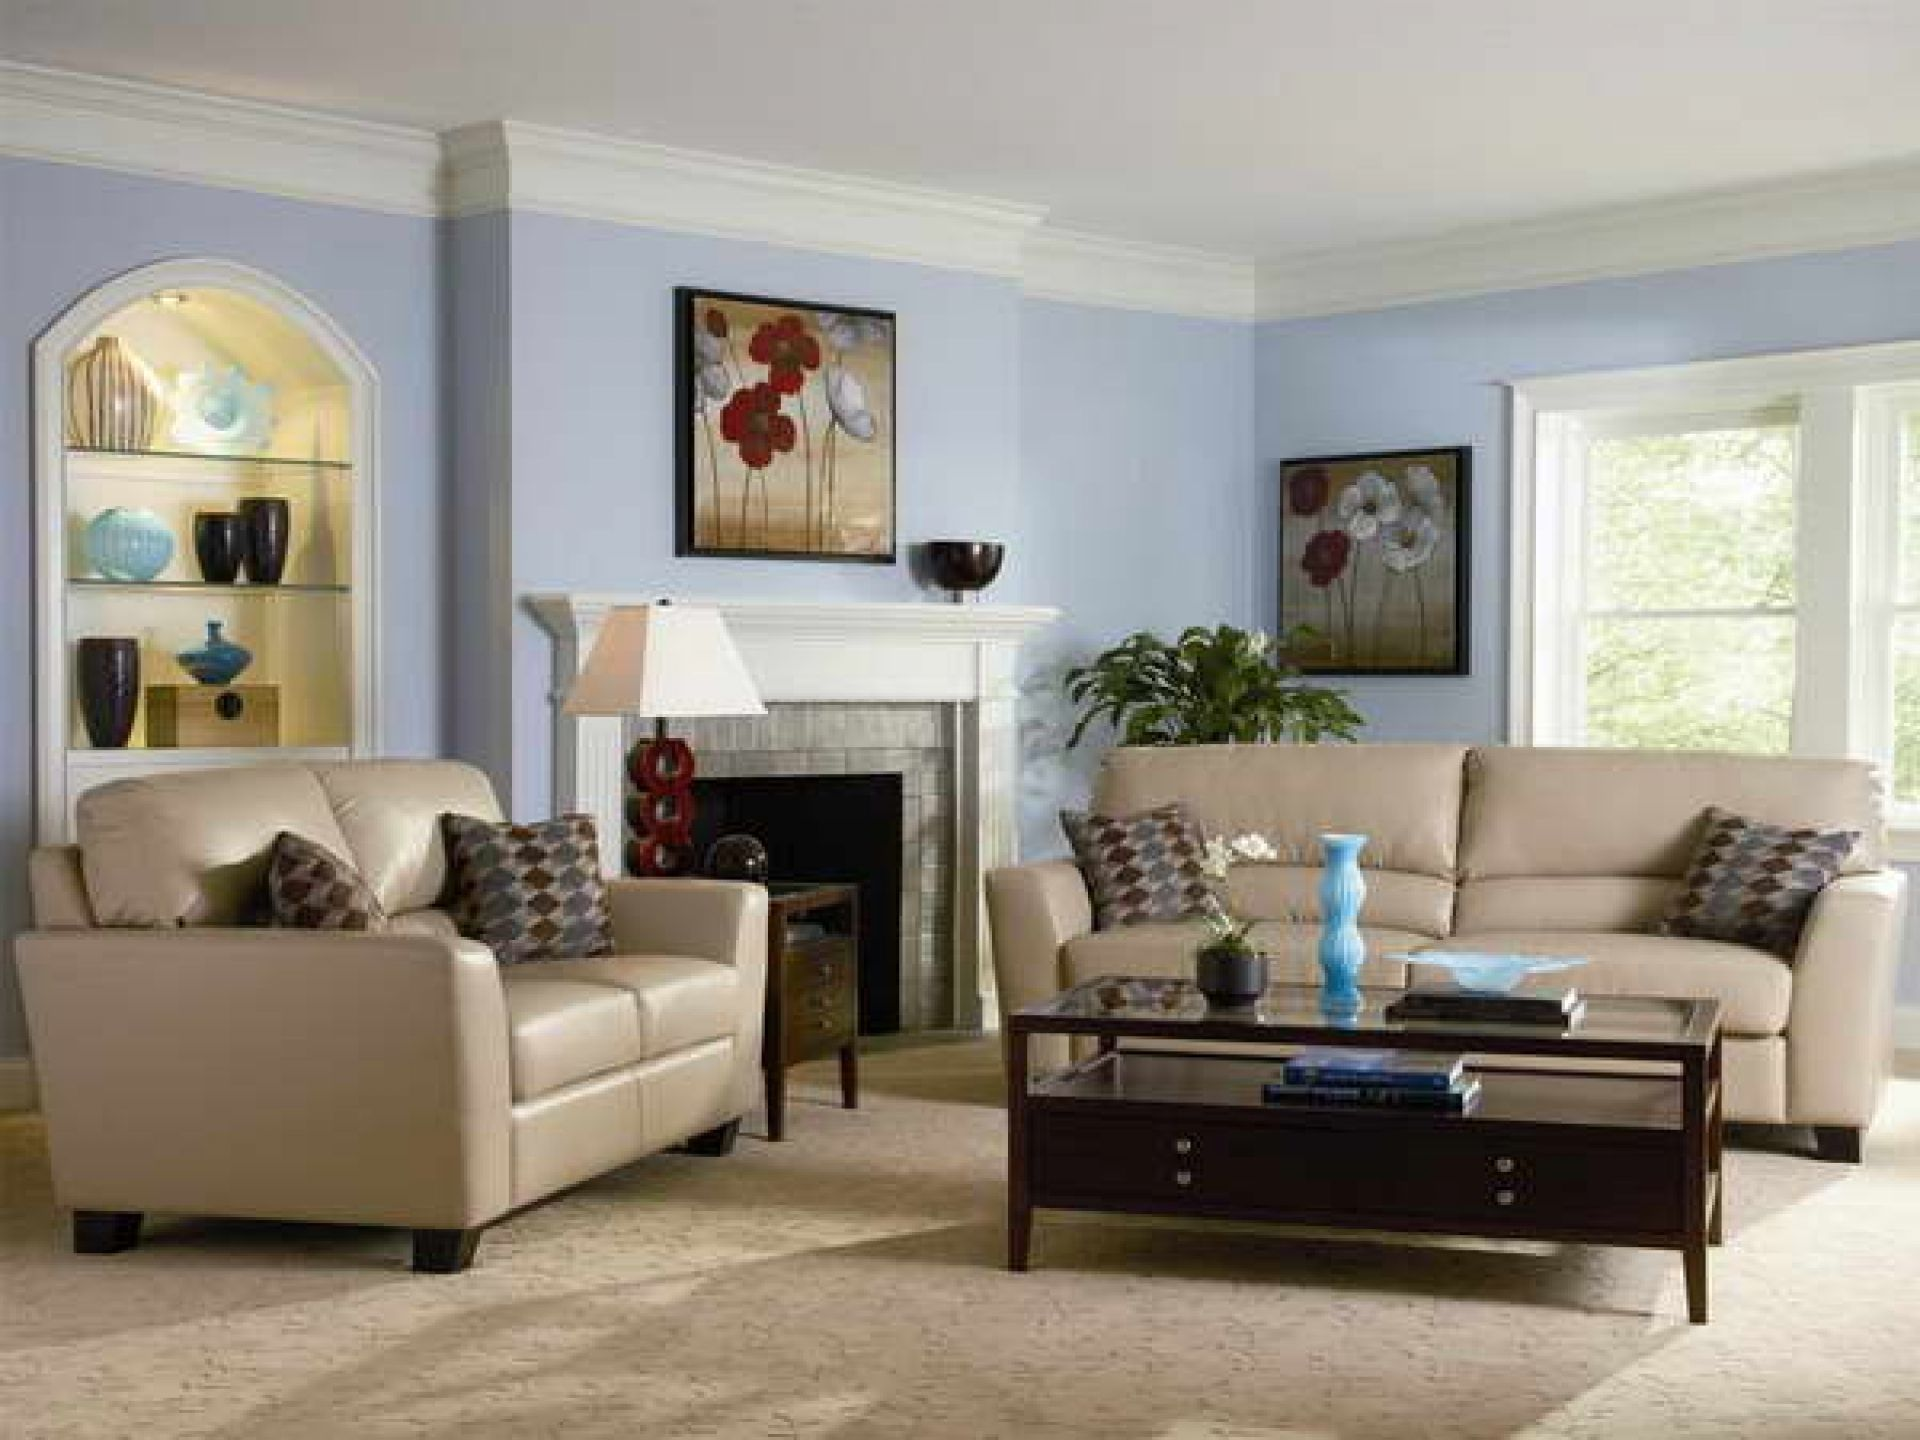 Small living room decorating ideas photos tan blue blue living